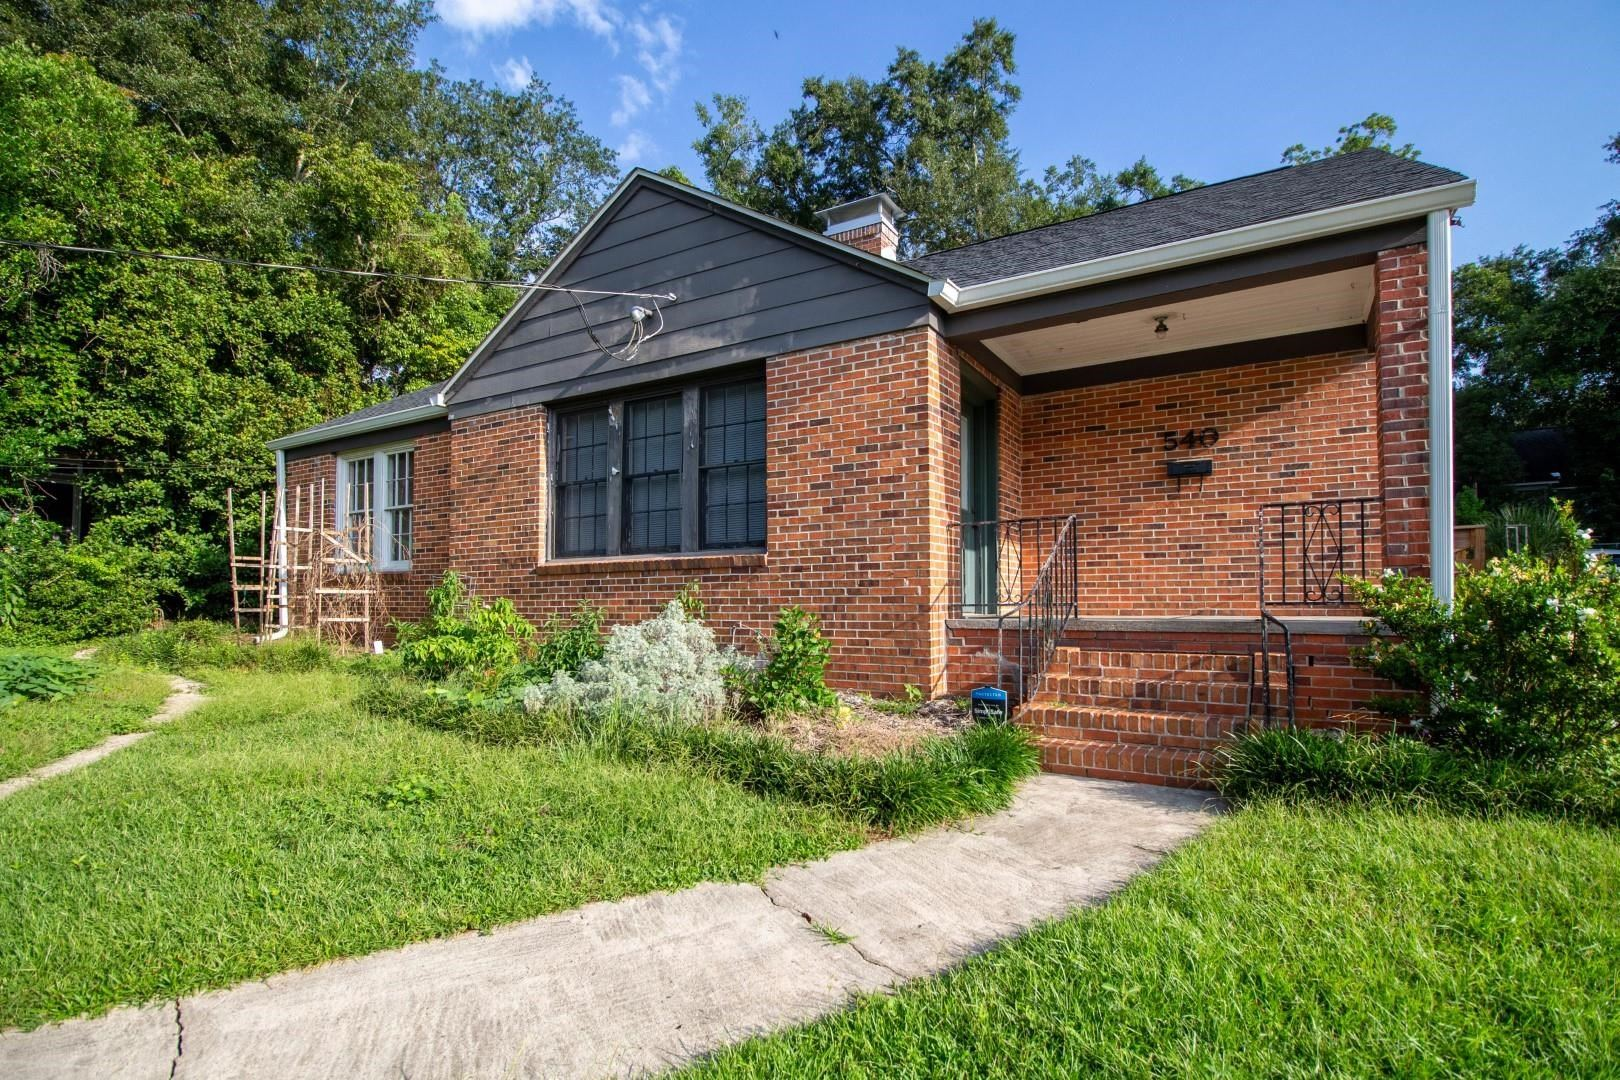 Photo of 540 Beverly Court, TALLAHASSEE, FL 32301 (MLS # 336103)